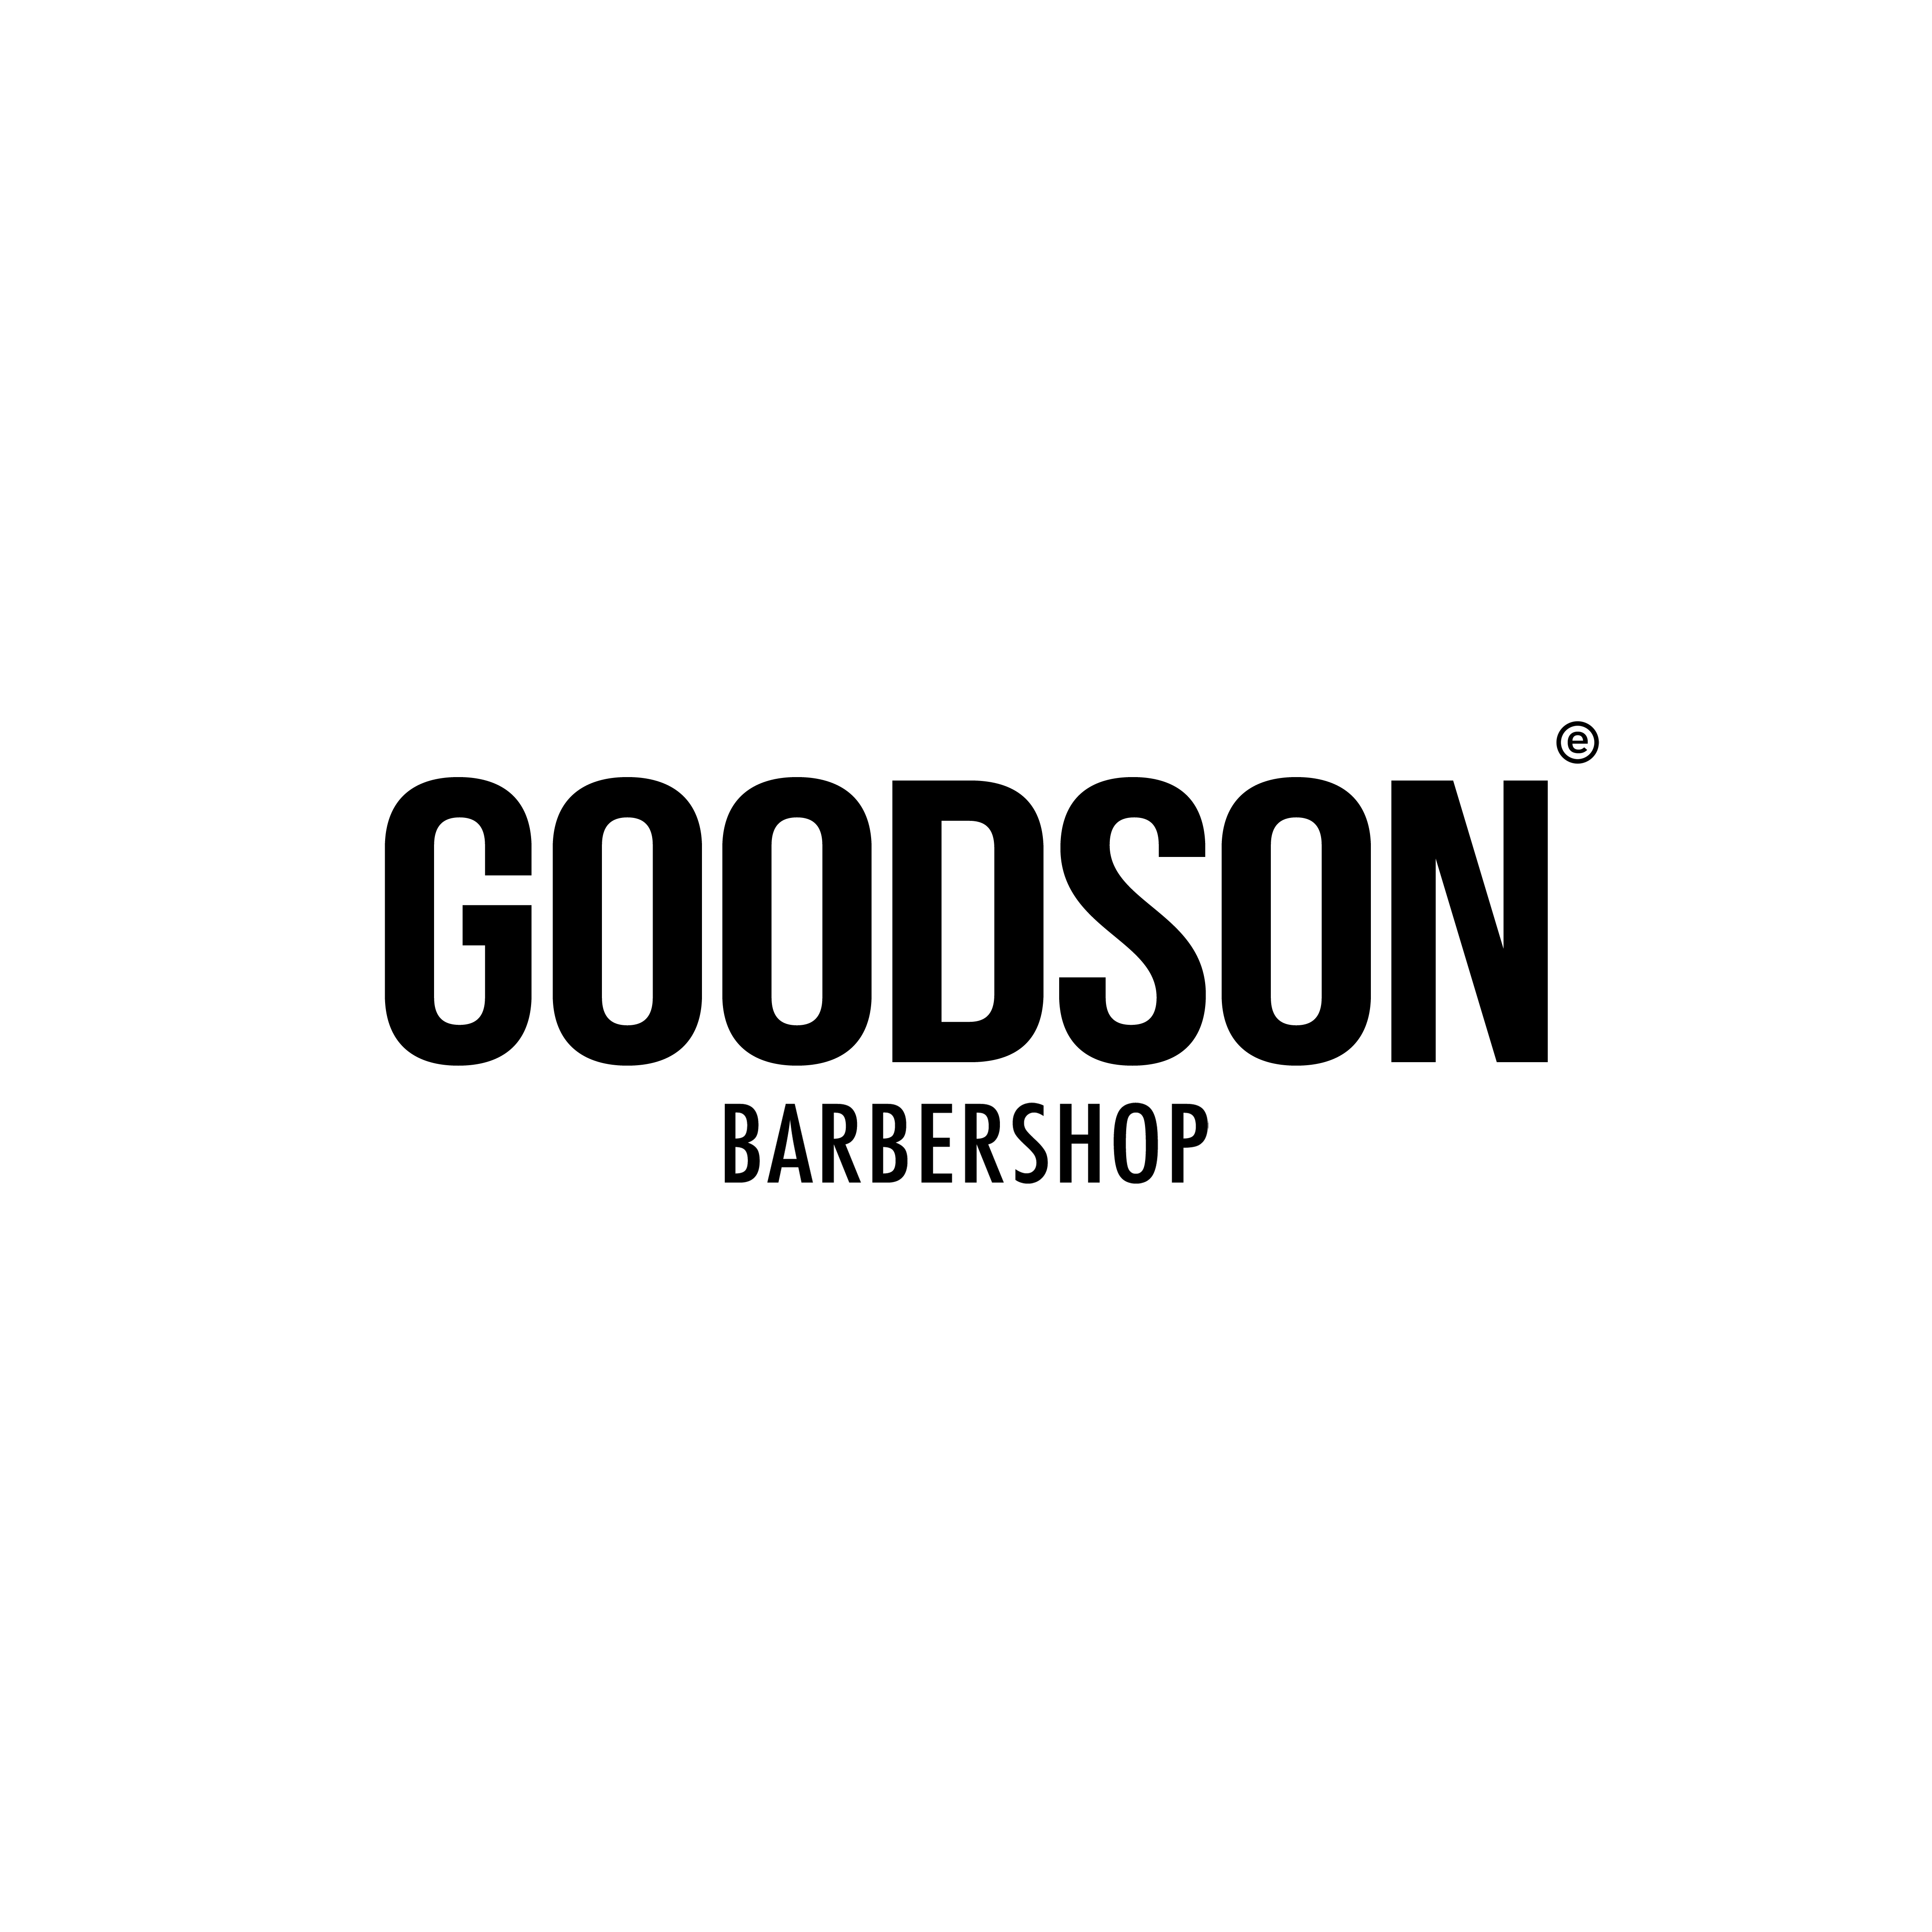 GOODSON BARBERSHOP